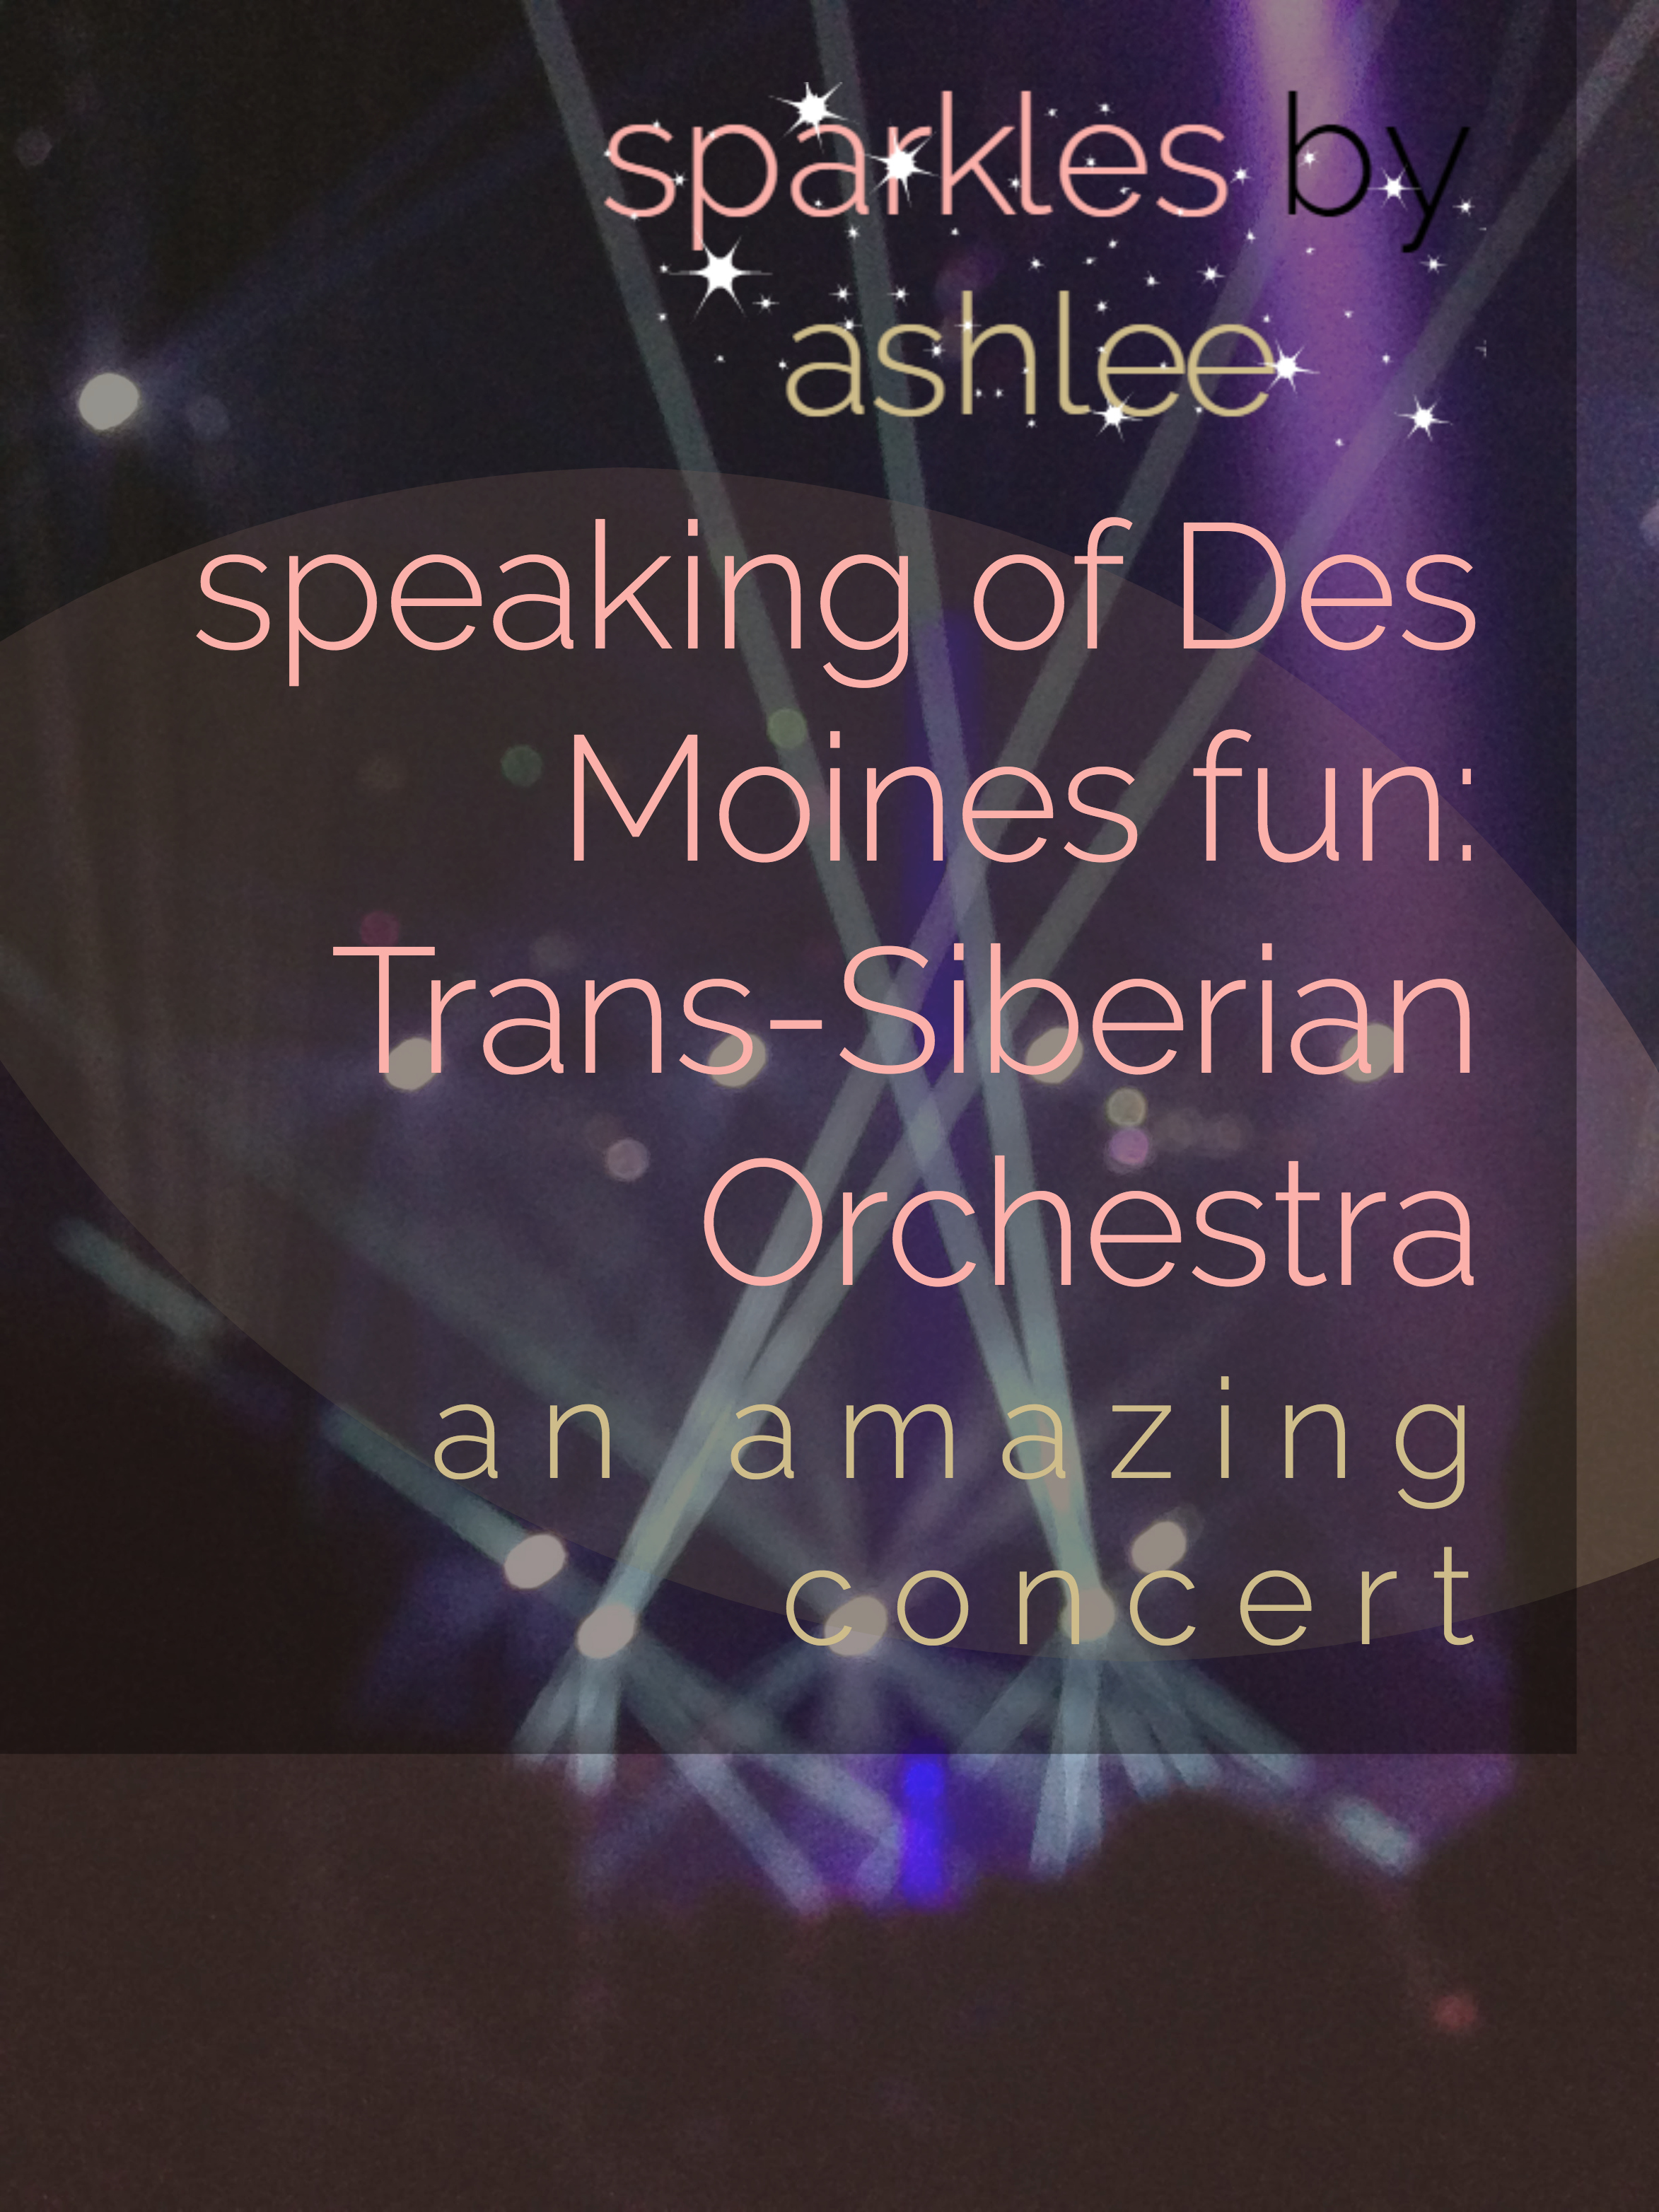 Speaking-of-Des-Moines-Fun-Trans-Siberian-Orchestra-Sparkles-by-Ashlee.jpg